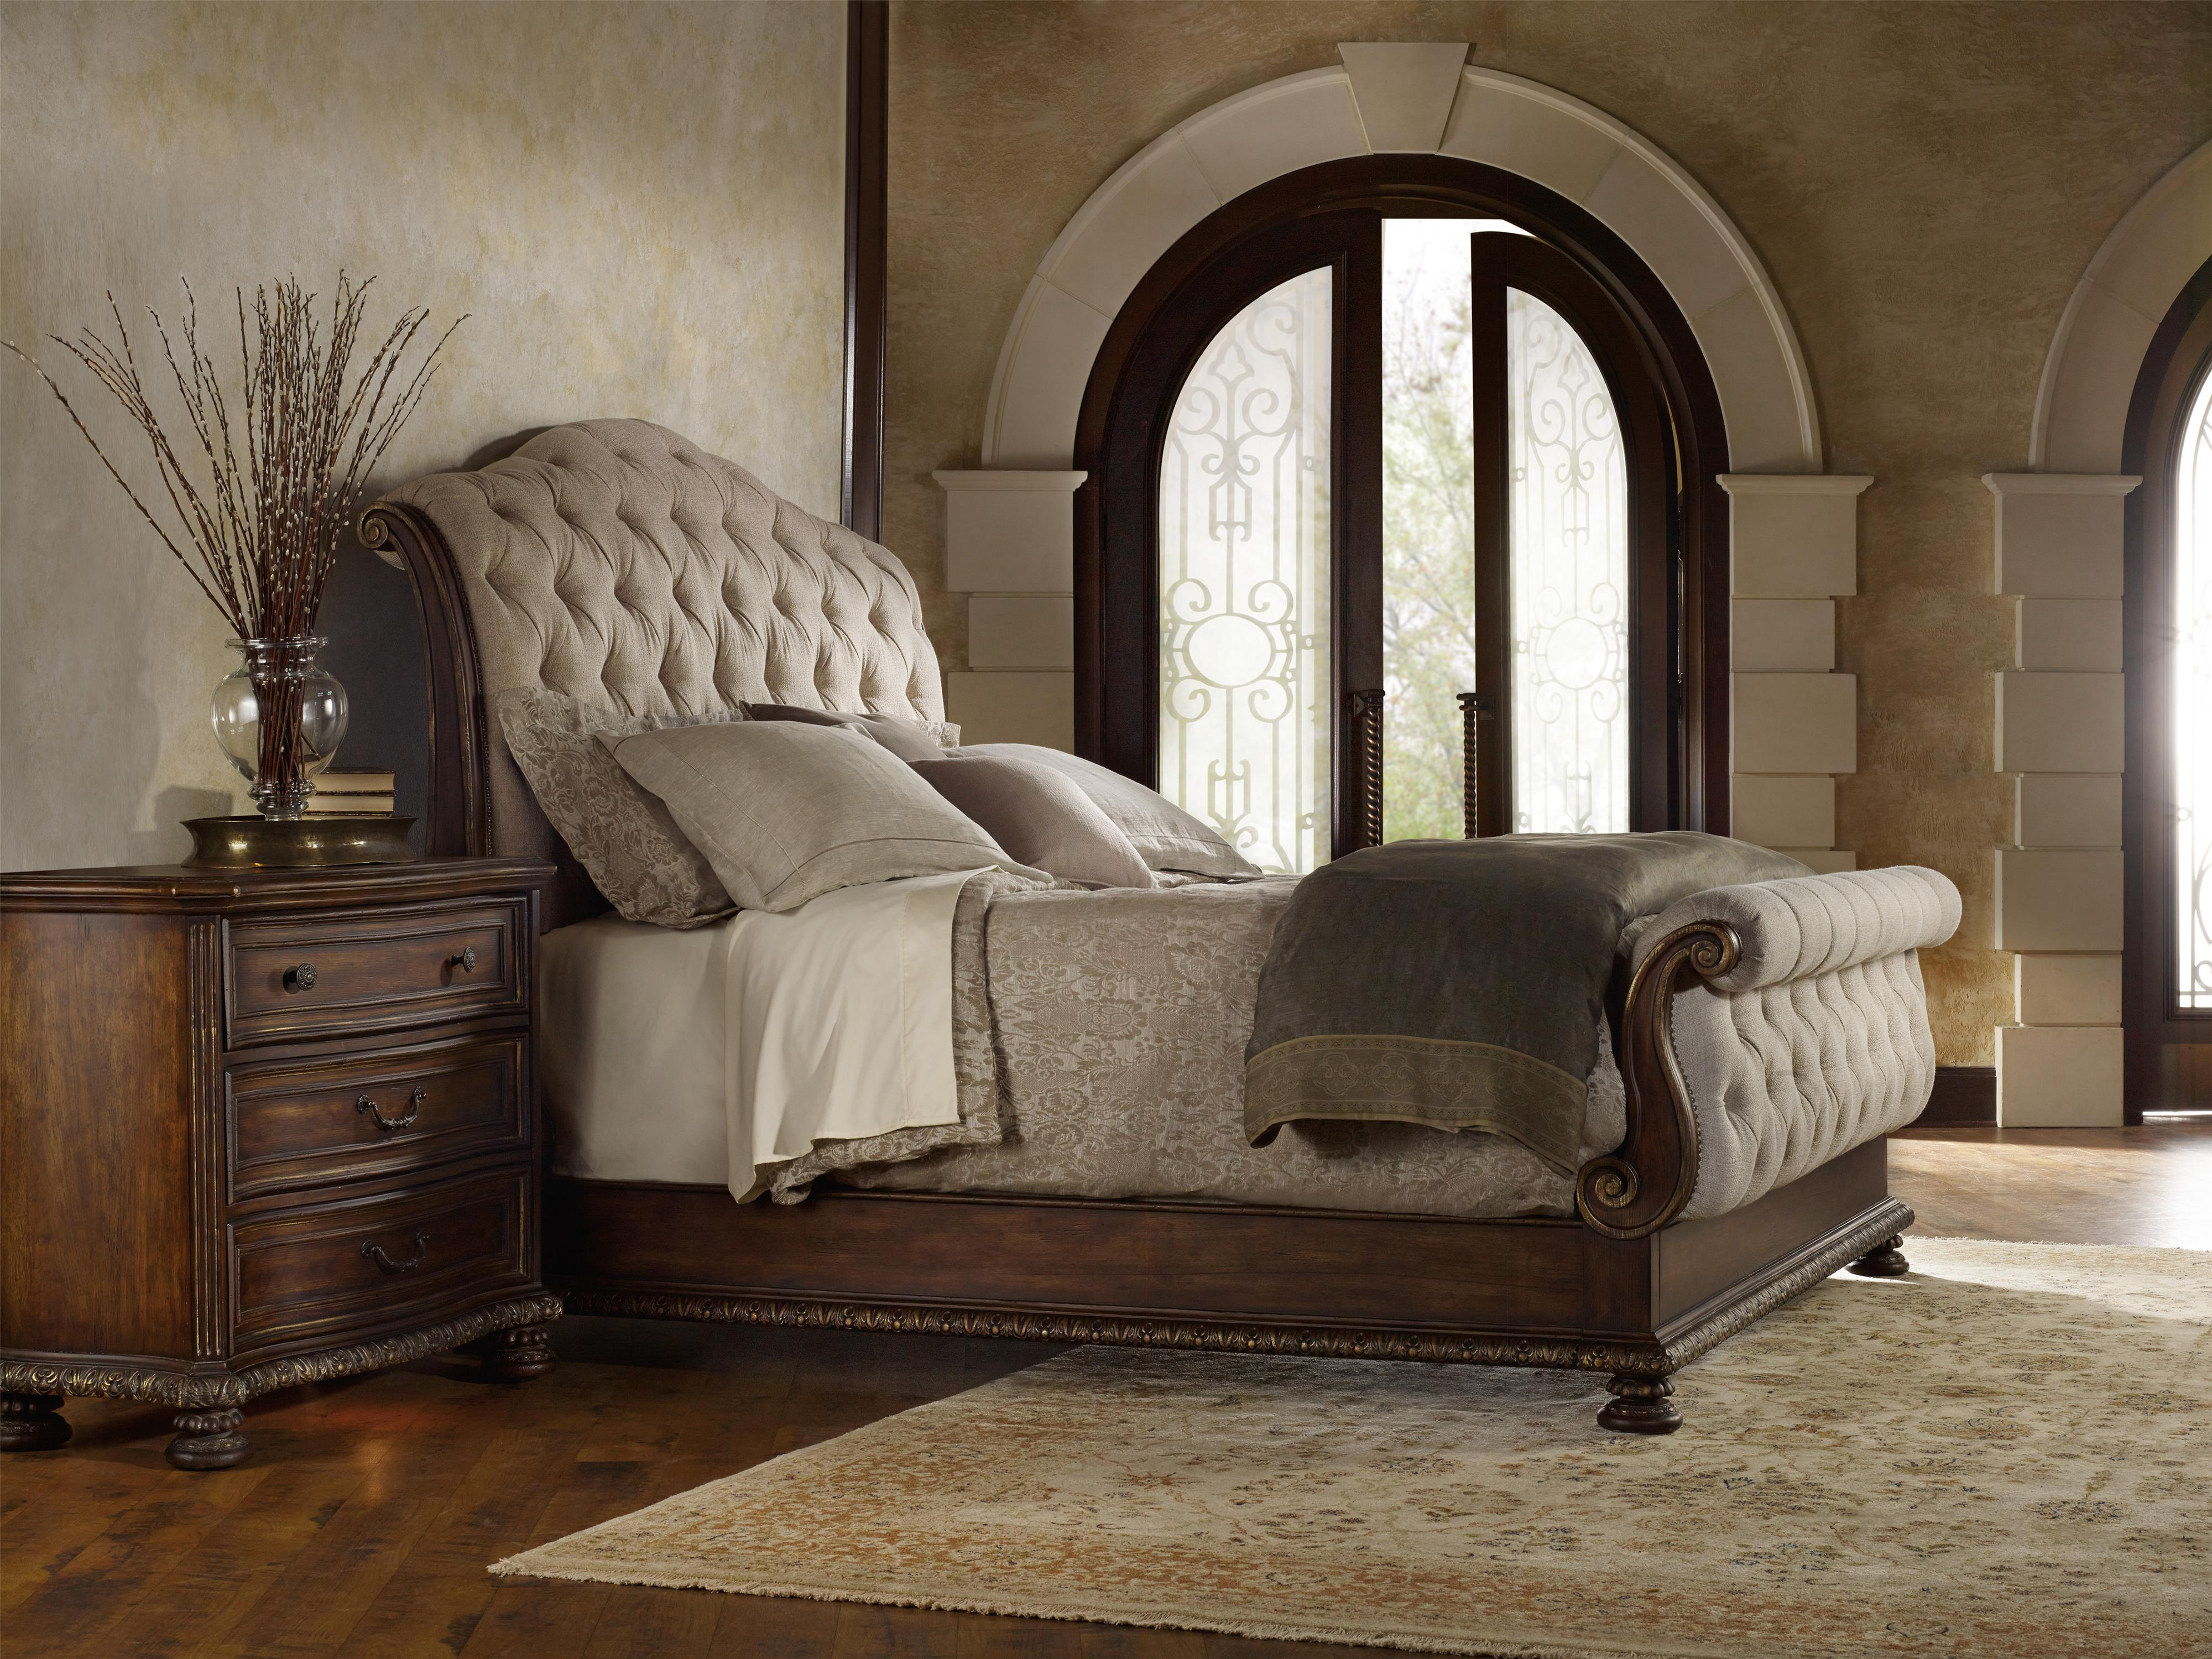 King Tufted Sleigh Bed With Upholstered Headboard And Footboard By Hooker Furniture Wolf And